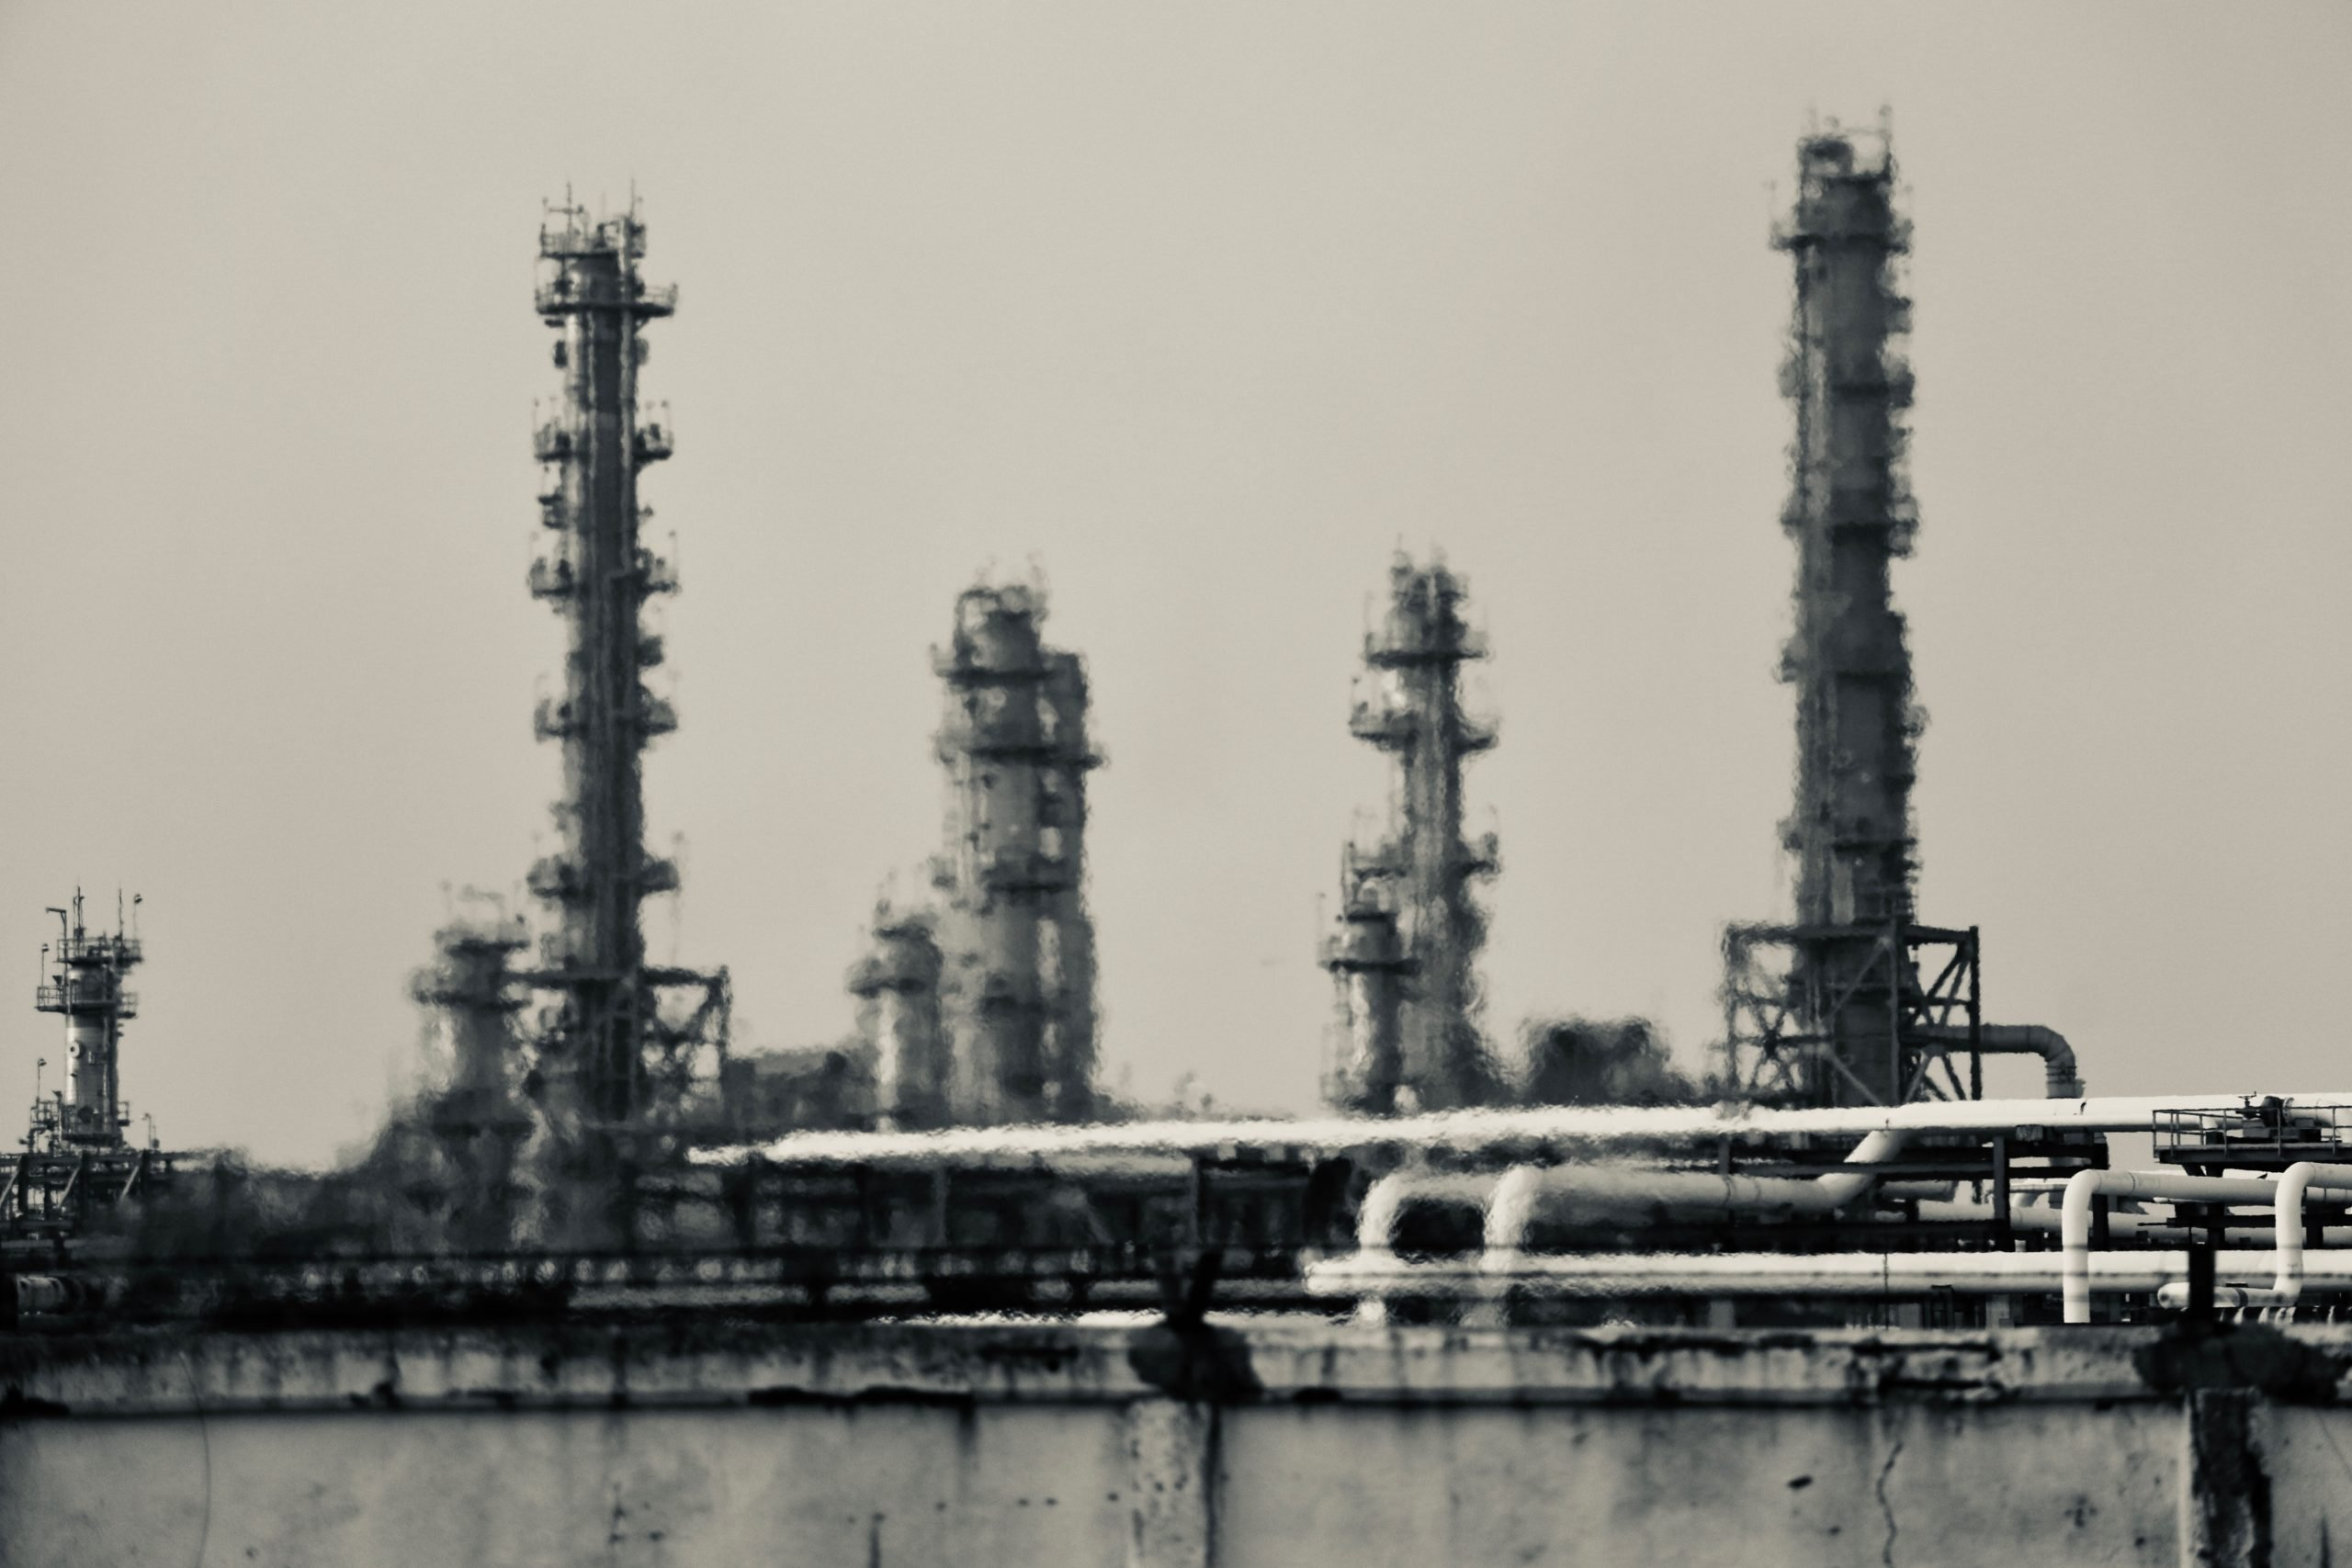 black and white image of oil refinery rippling in heat